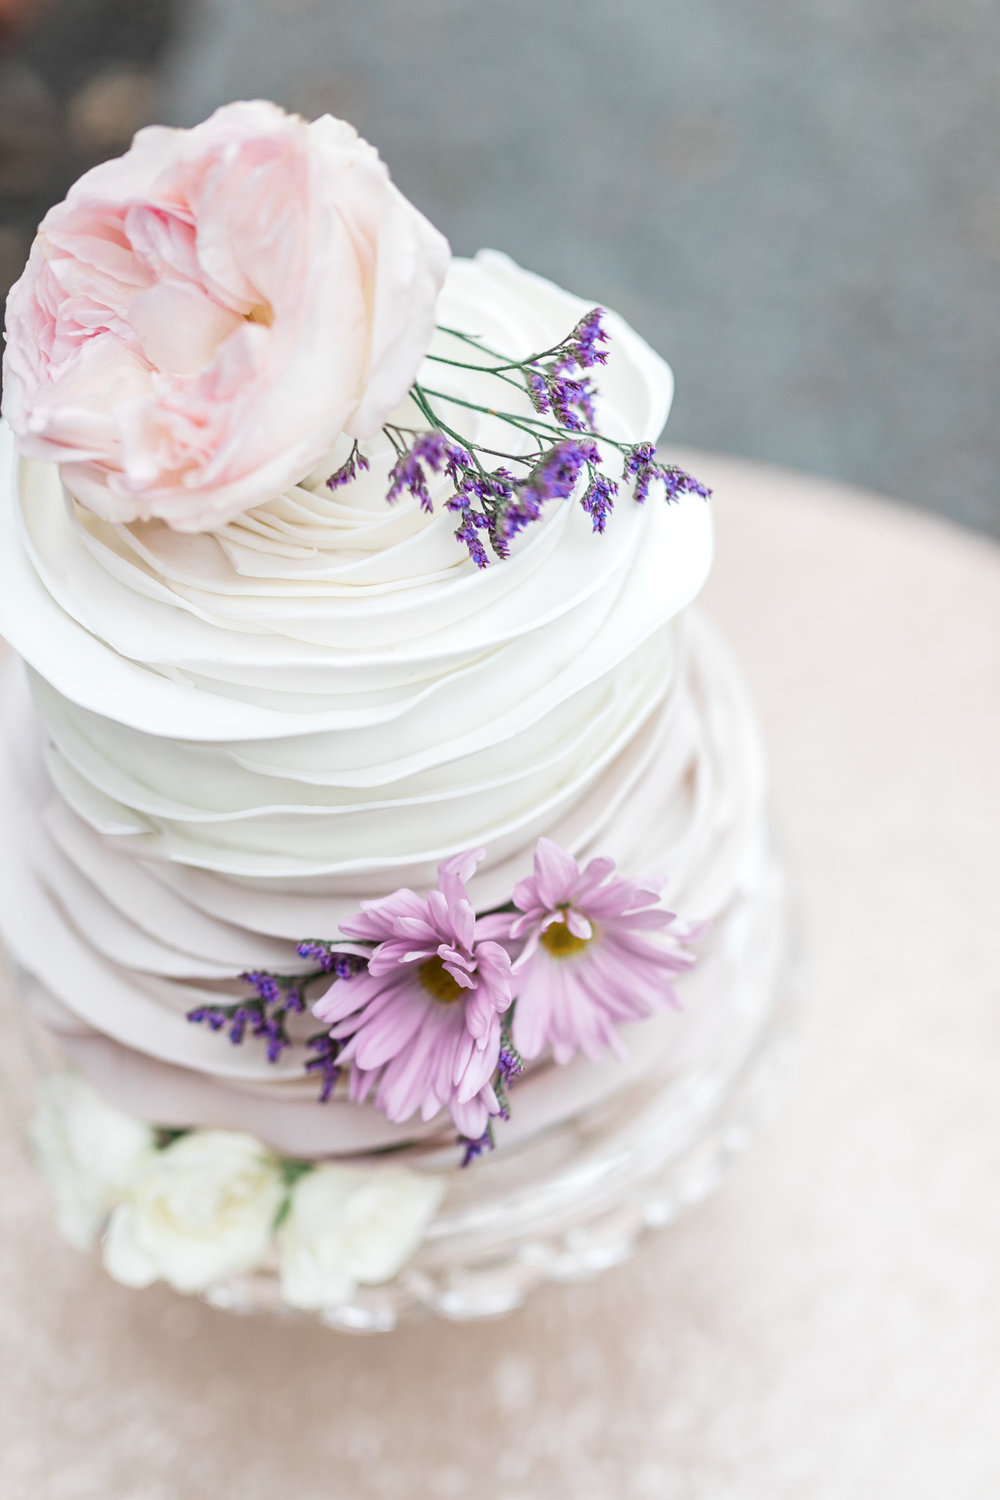 Ruffle Wedding Cake | Styled Wedding Shoot at Gable Hill Barn | Elegant Chic Wedding | Laurenda Marie Photography | West Michigan Wedding Photographer |